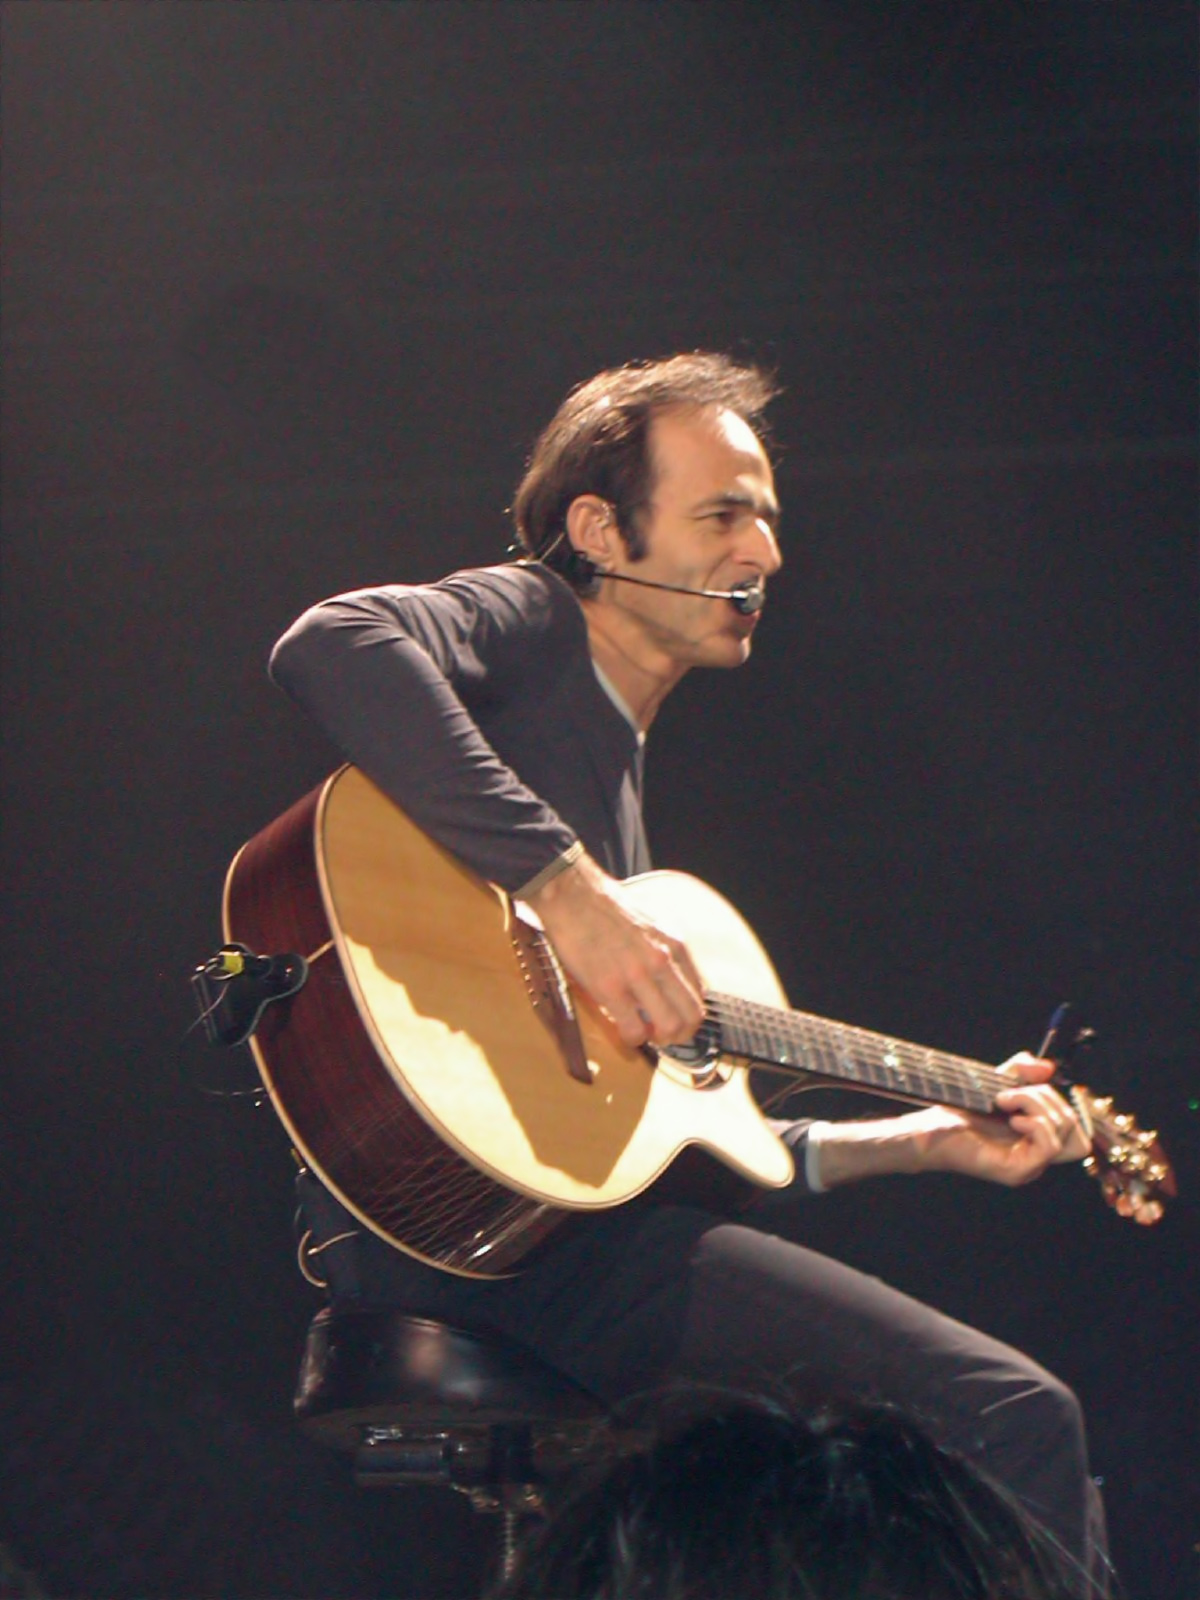 Jean-Jacques Goldman in 2002